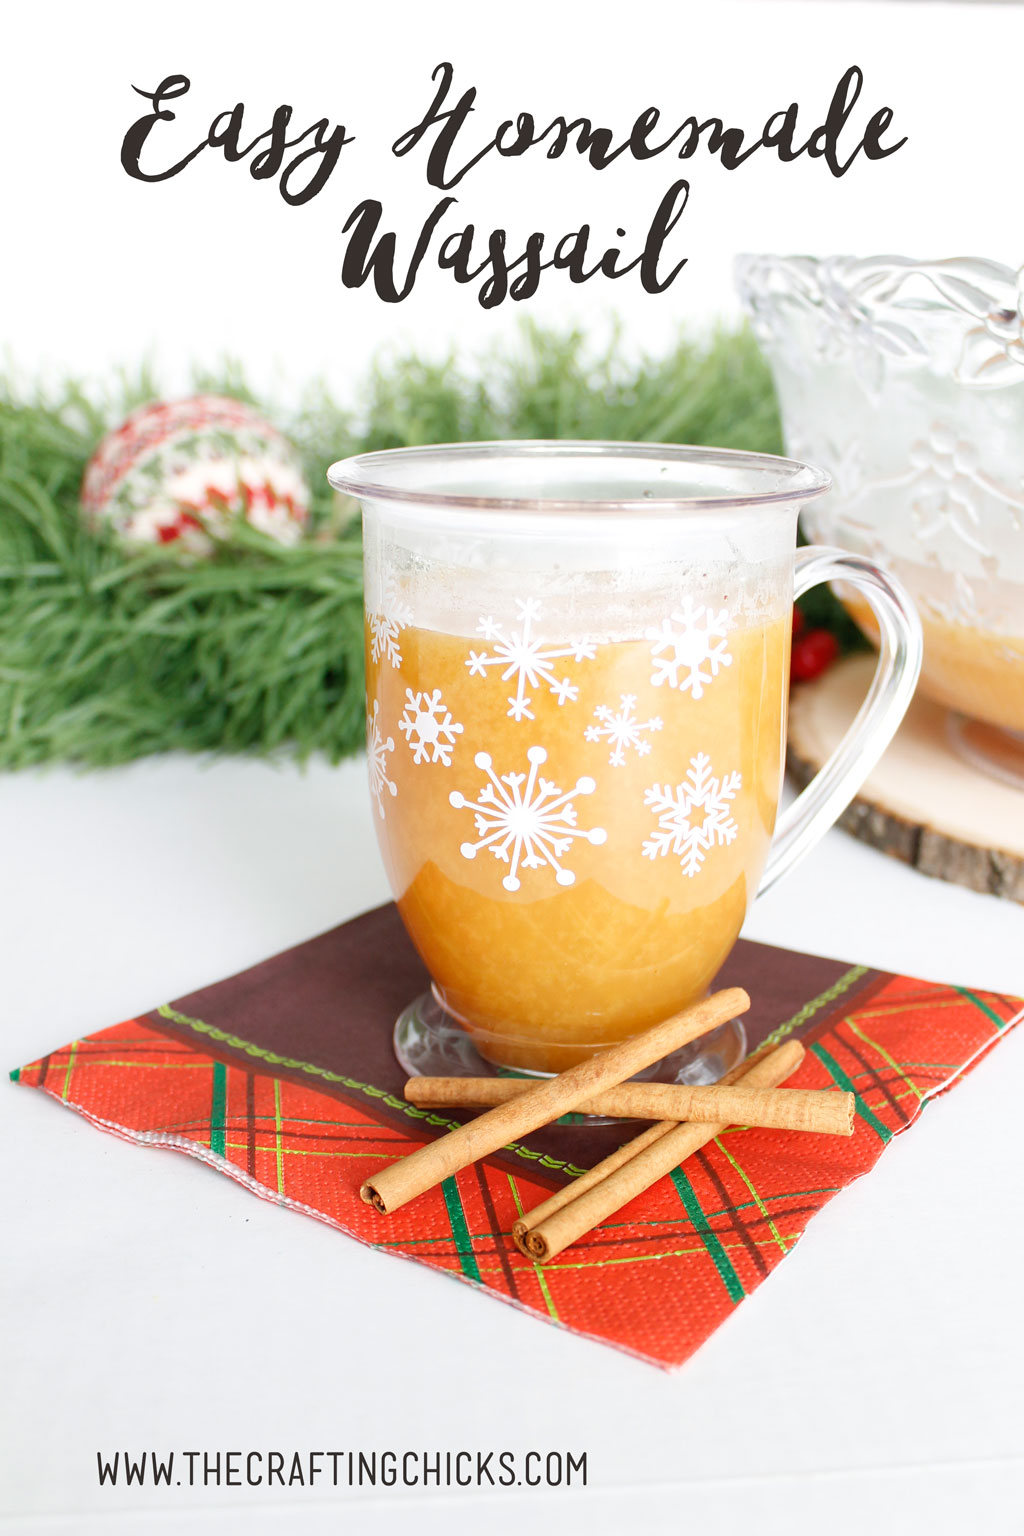 This Easy Homemade Wassail recipe is almost too good to be true. You won't believe how delicious it is, and yet so simple to make.